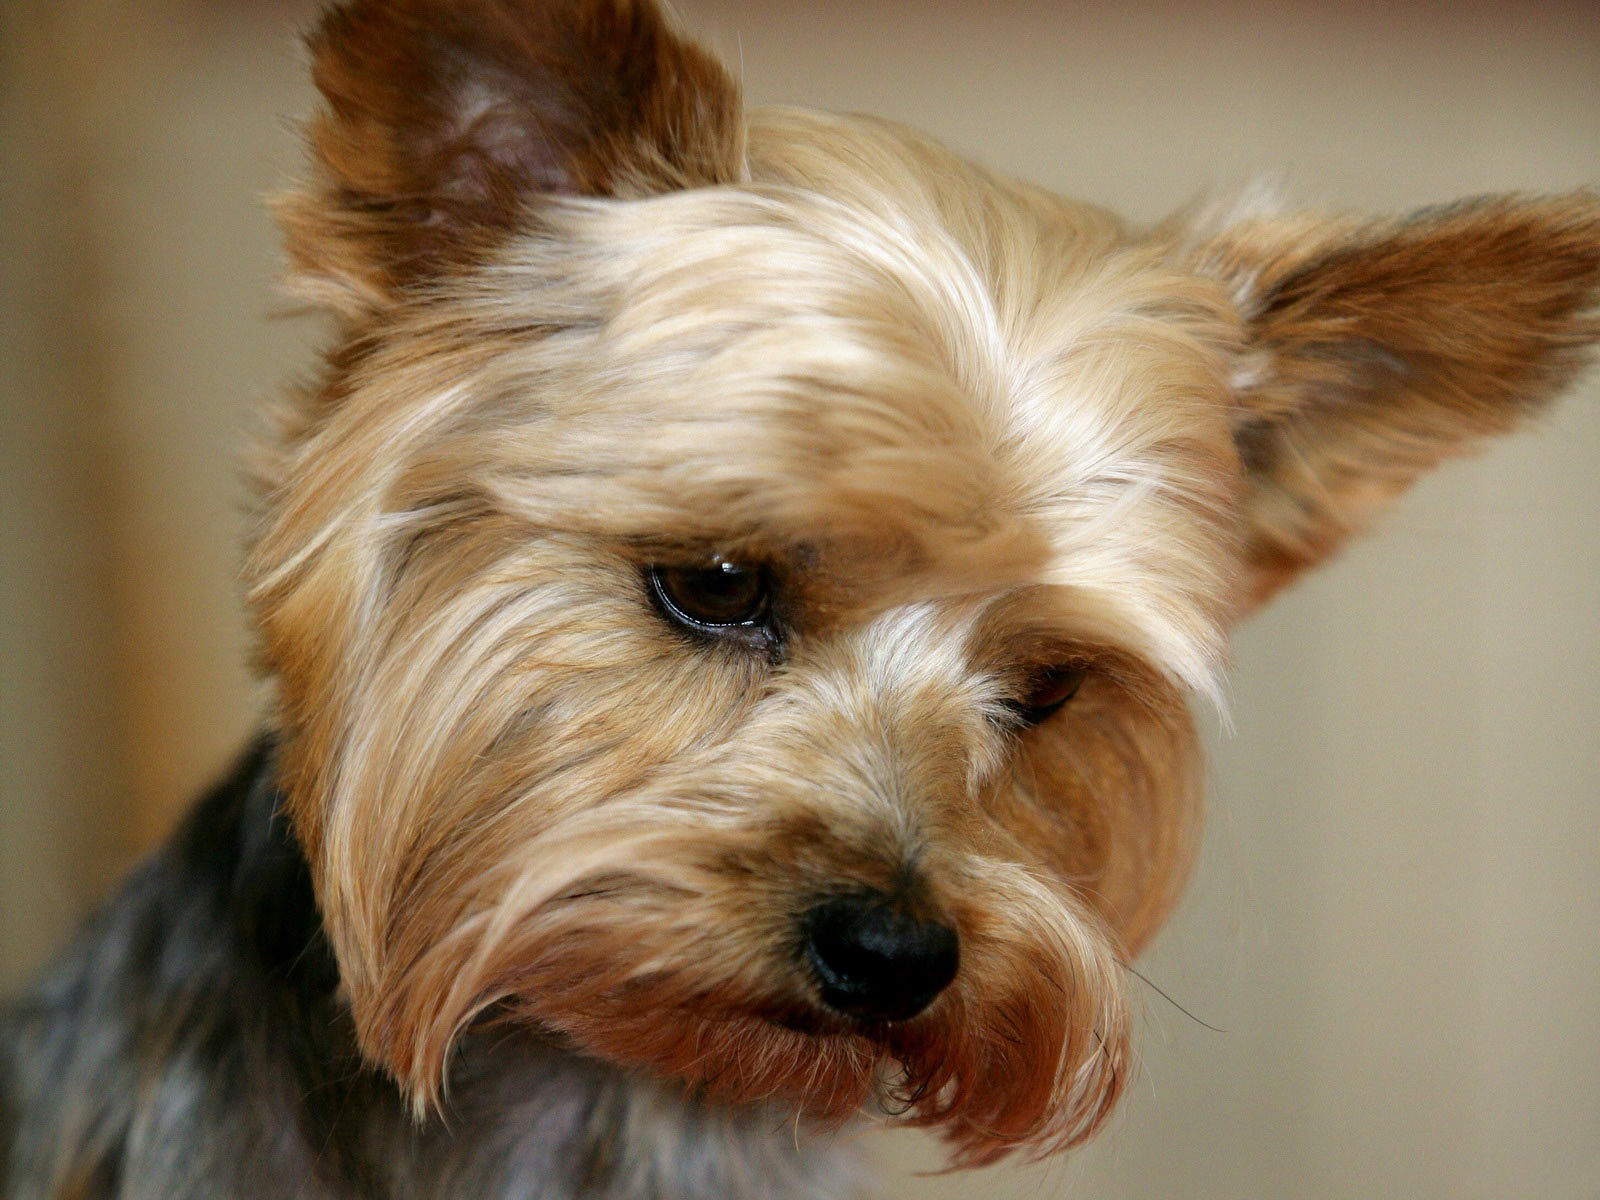 Yorkshire Terrier - Dogs Wallpaper (13248745) - Fanpop fanclubs